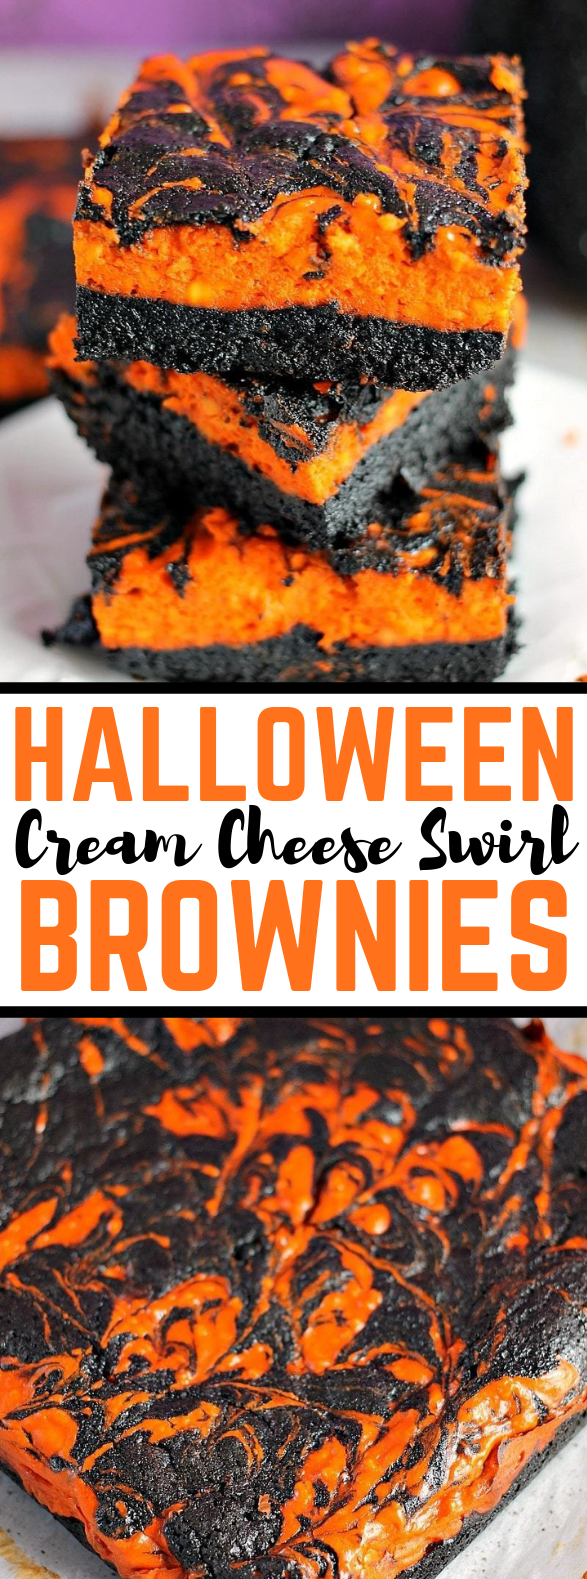 HALLOWEEN SWIRL CREAM CHEESE BROWNIES #partydessert #cake